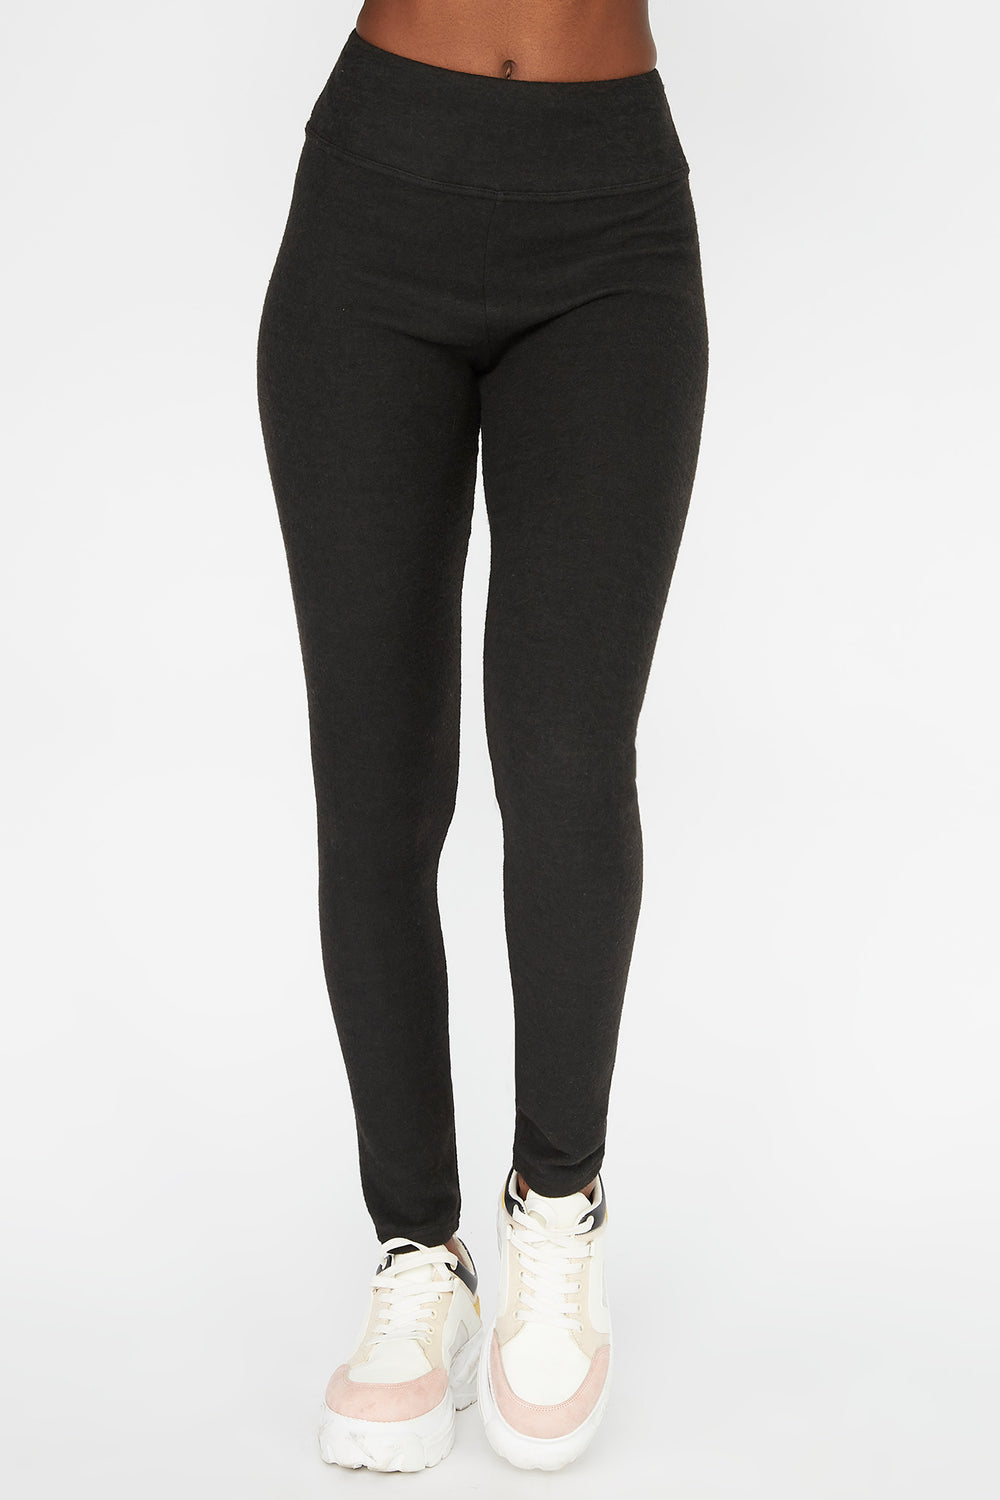 Leggings Cepillados de Cintura Autoajustable Negro